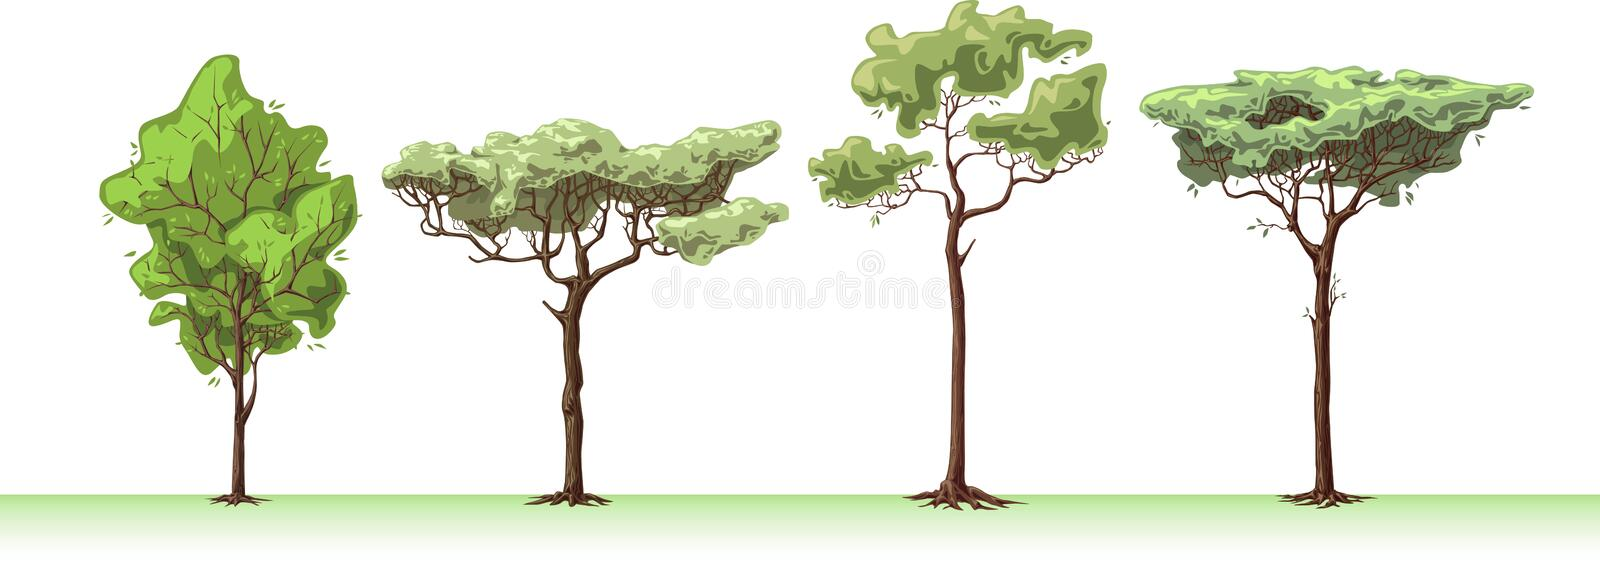 Four trees. The four great handemade trees royalty free illustration